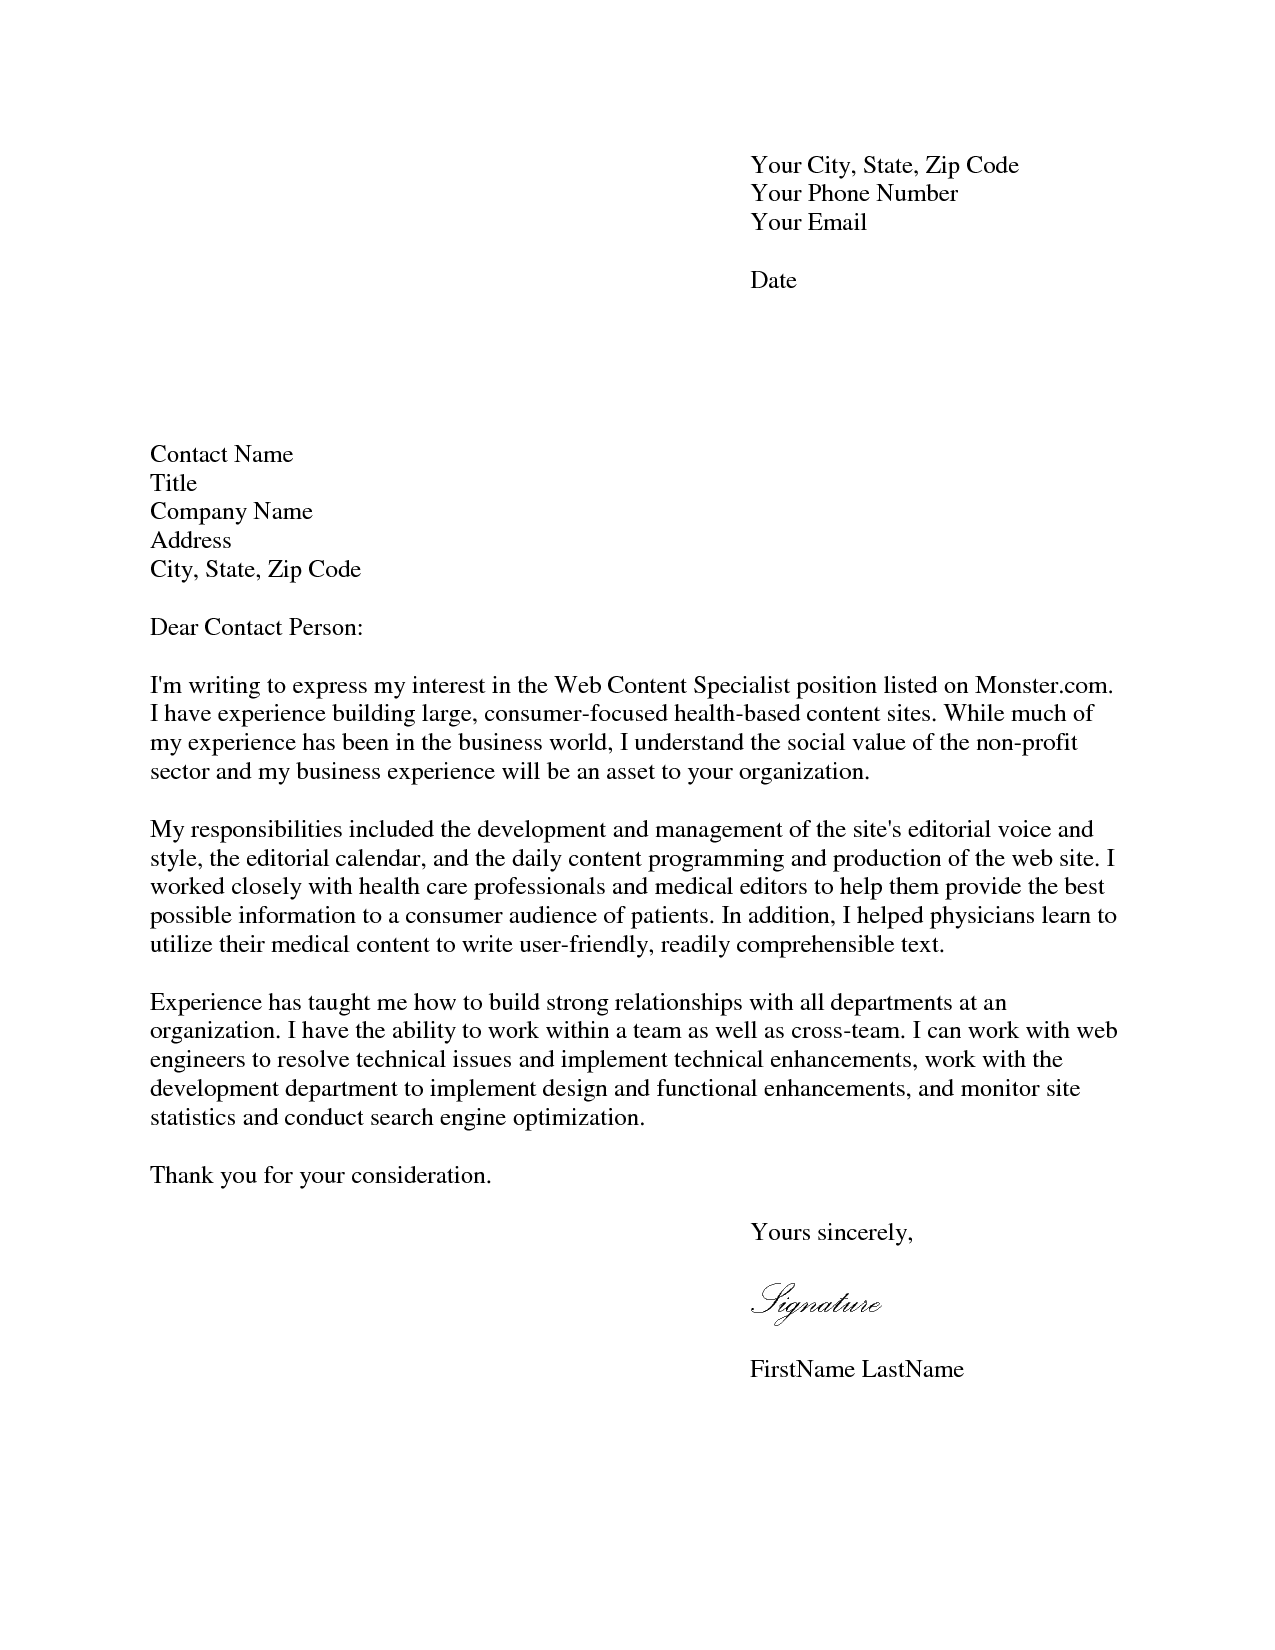 cover letter format for job application cover letter application application cover 21103